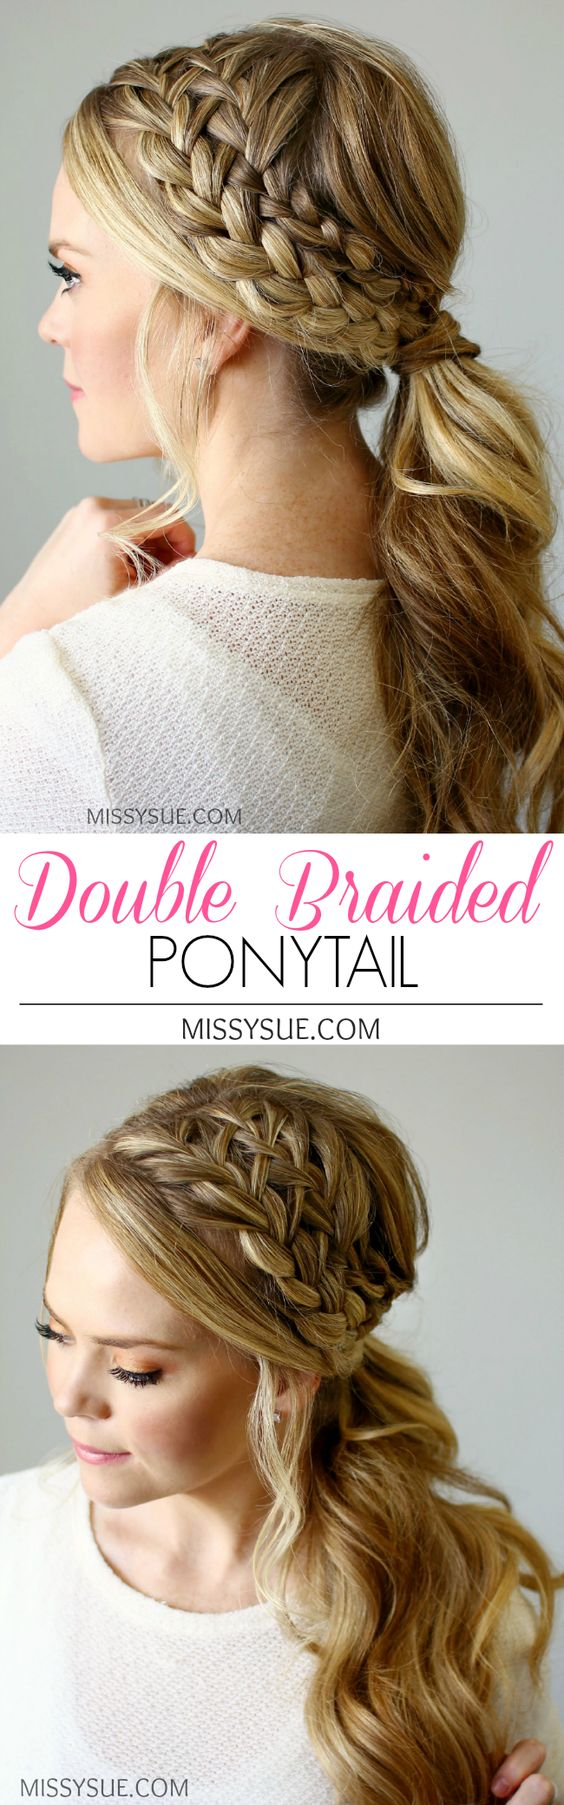 30 Simple Easy Ponytail Hairstyles for Lazy Girls - Ponytail Ideas 2018